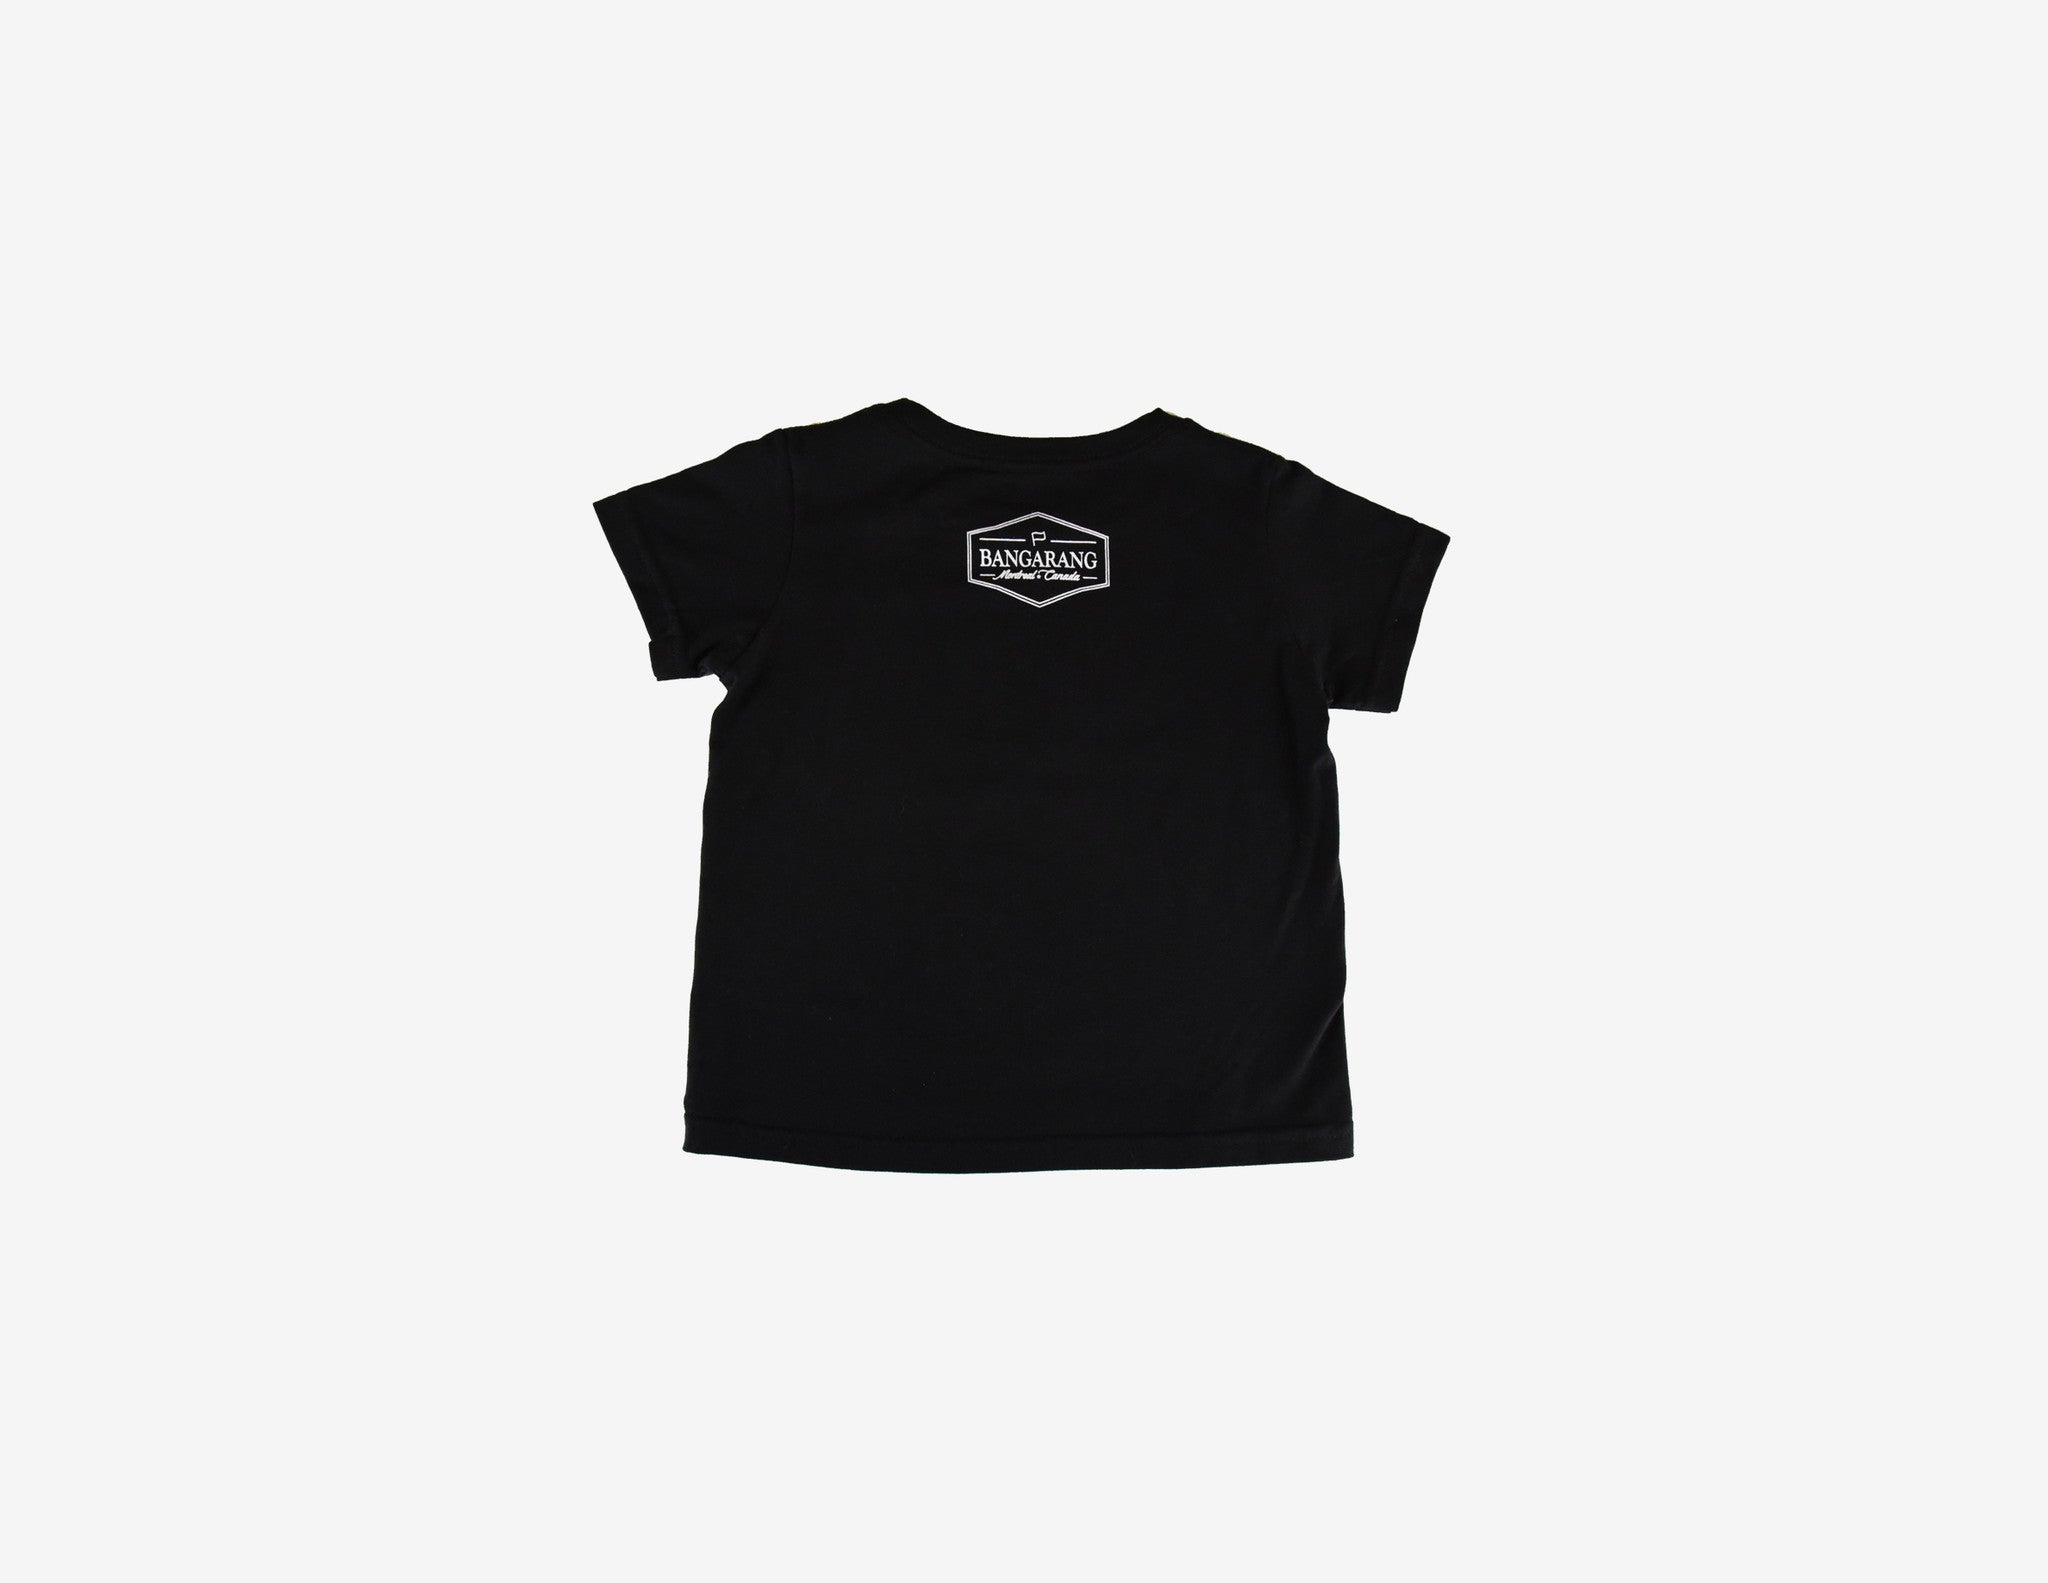 BANG BANG BANGARANG // T-Shirt Enfant Noir // Black Toddler Tee